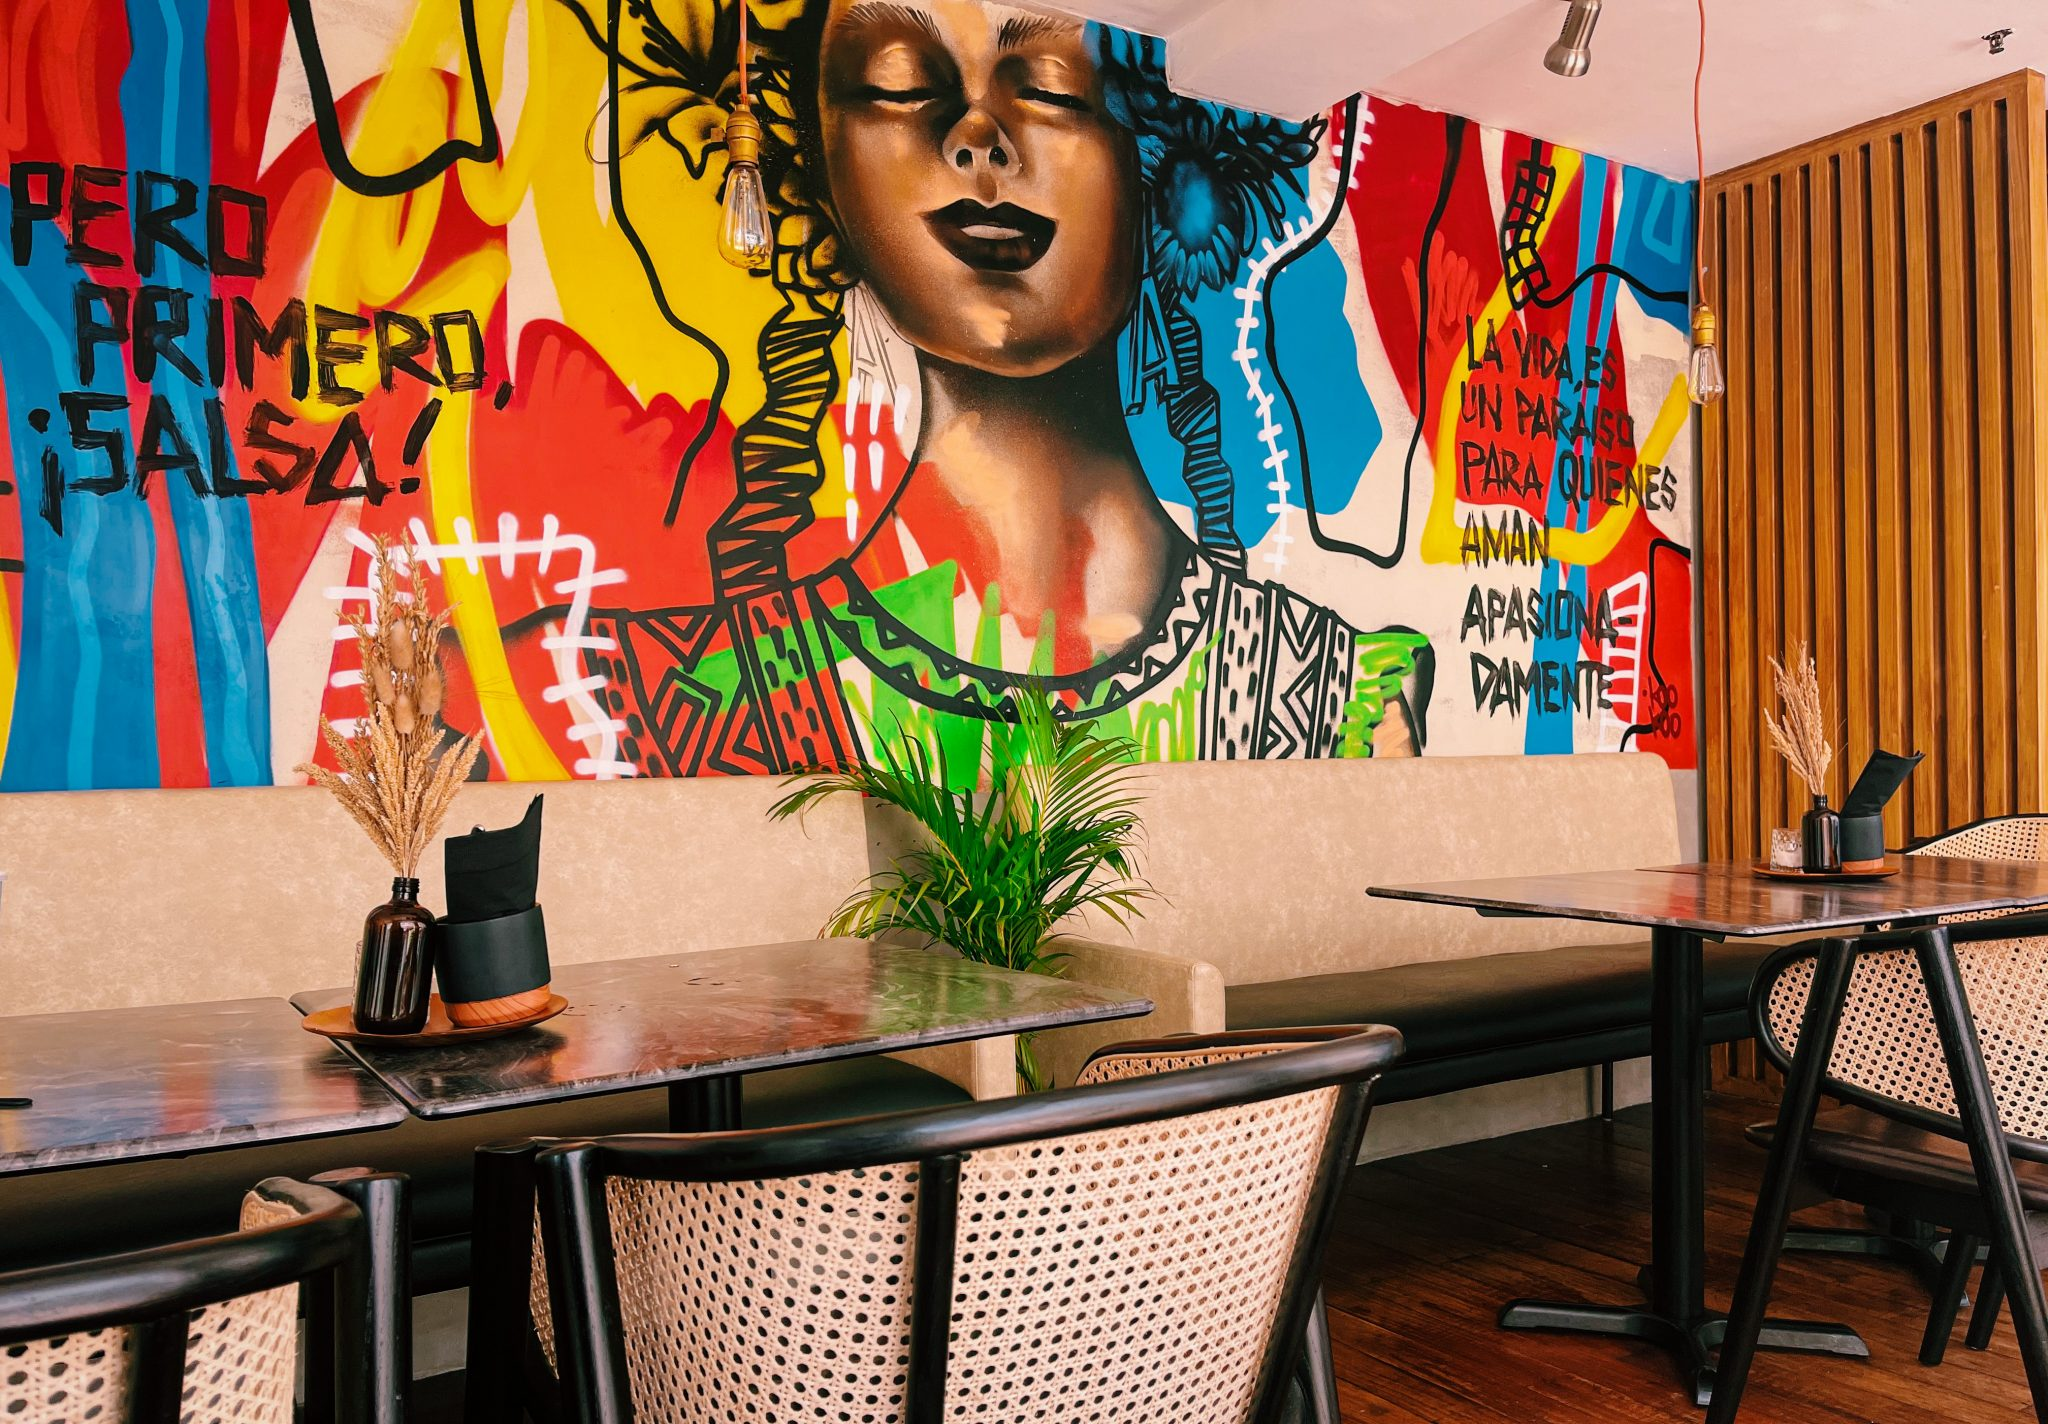 Cafe Alegria is a frontrunner on the lighter side of dining